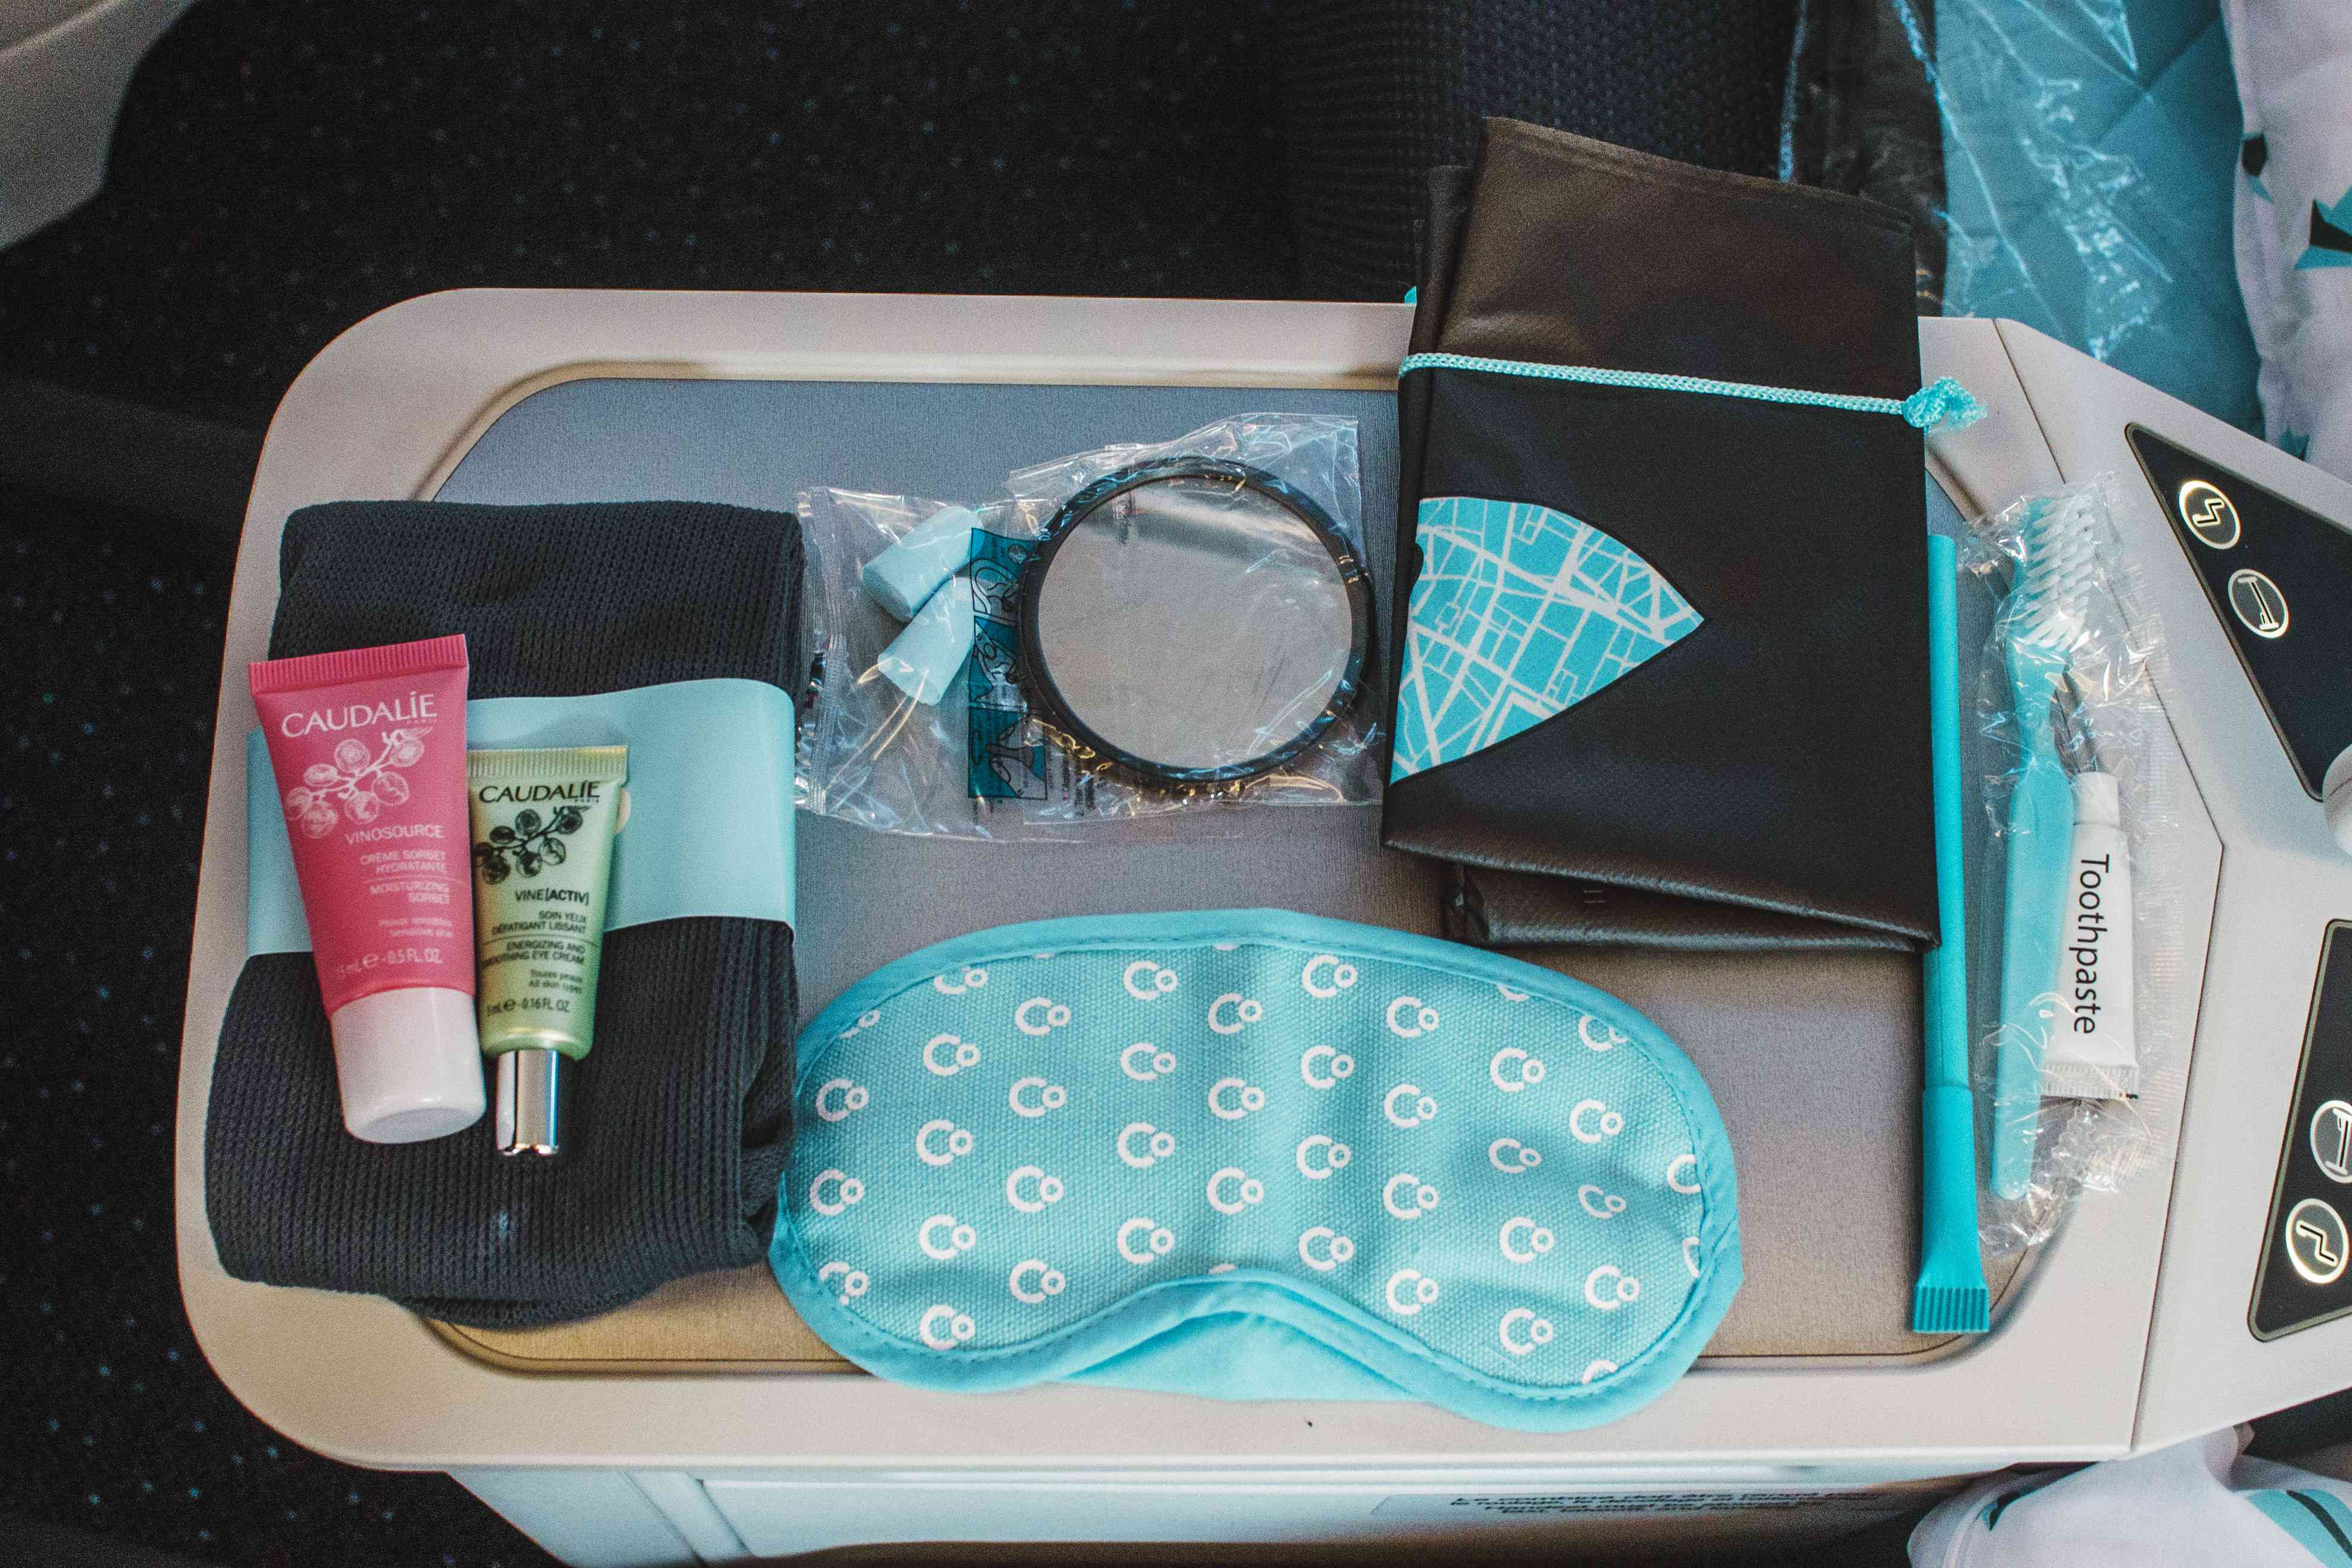 Contents inside the amenity kit